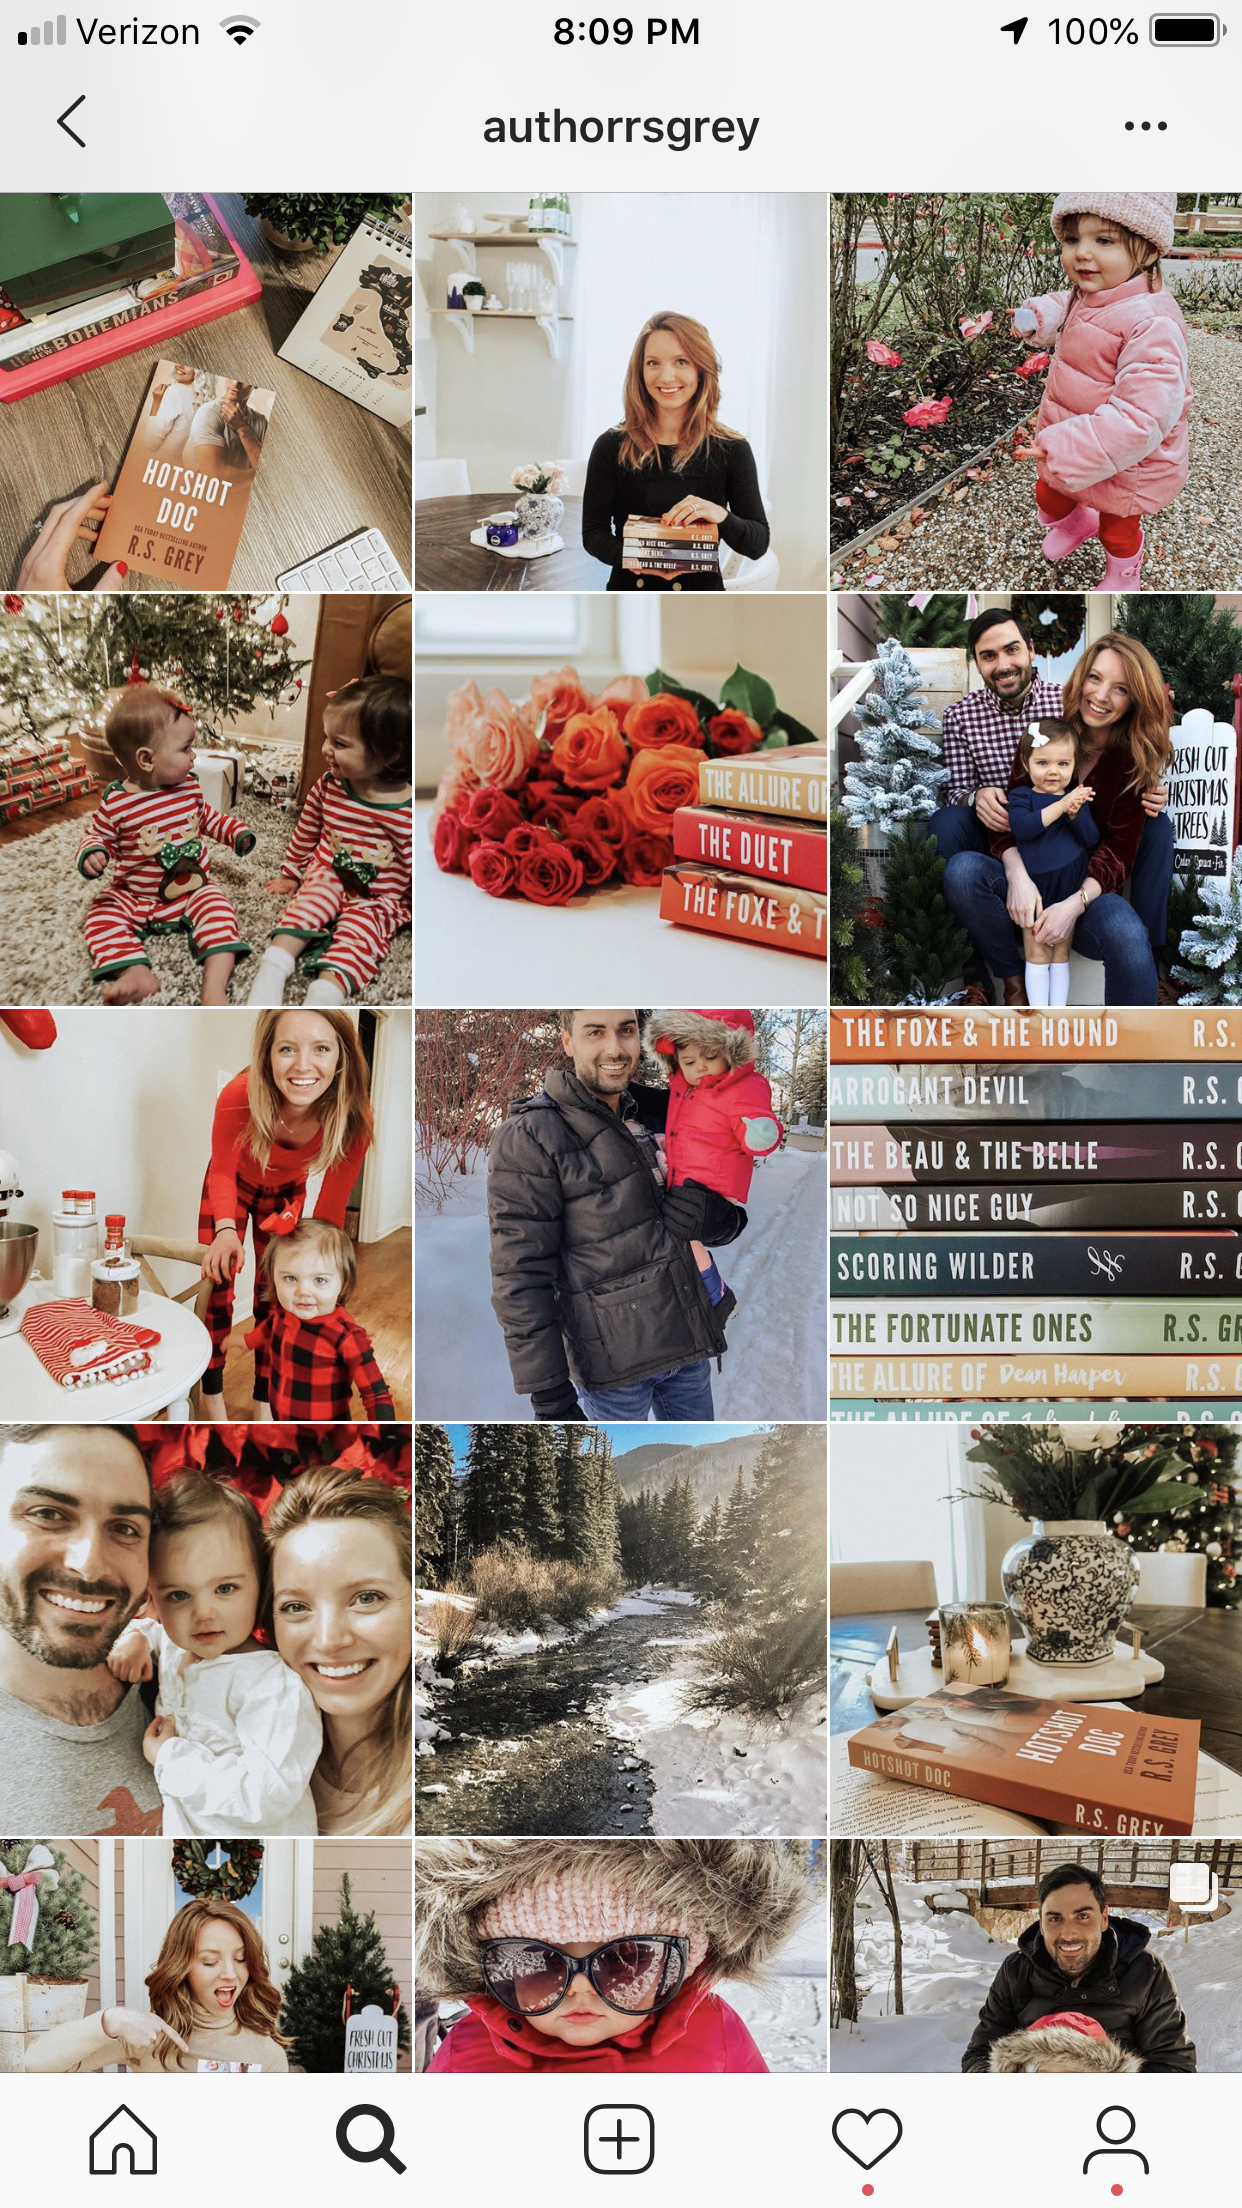 RS Grey's Instagram feed - click here to follow her!